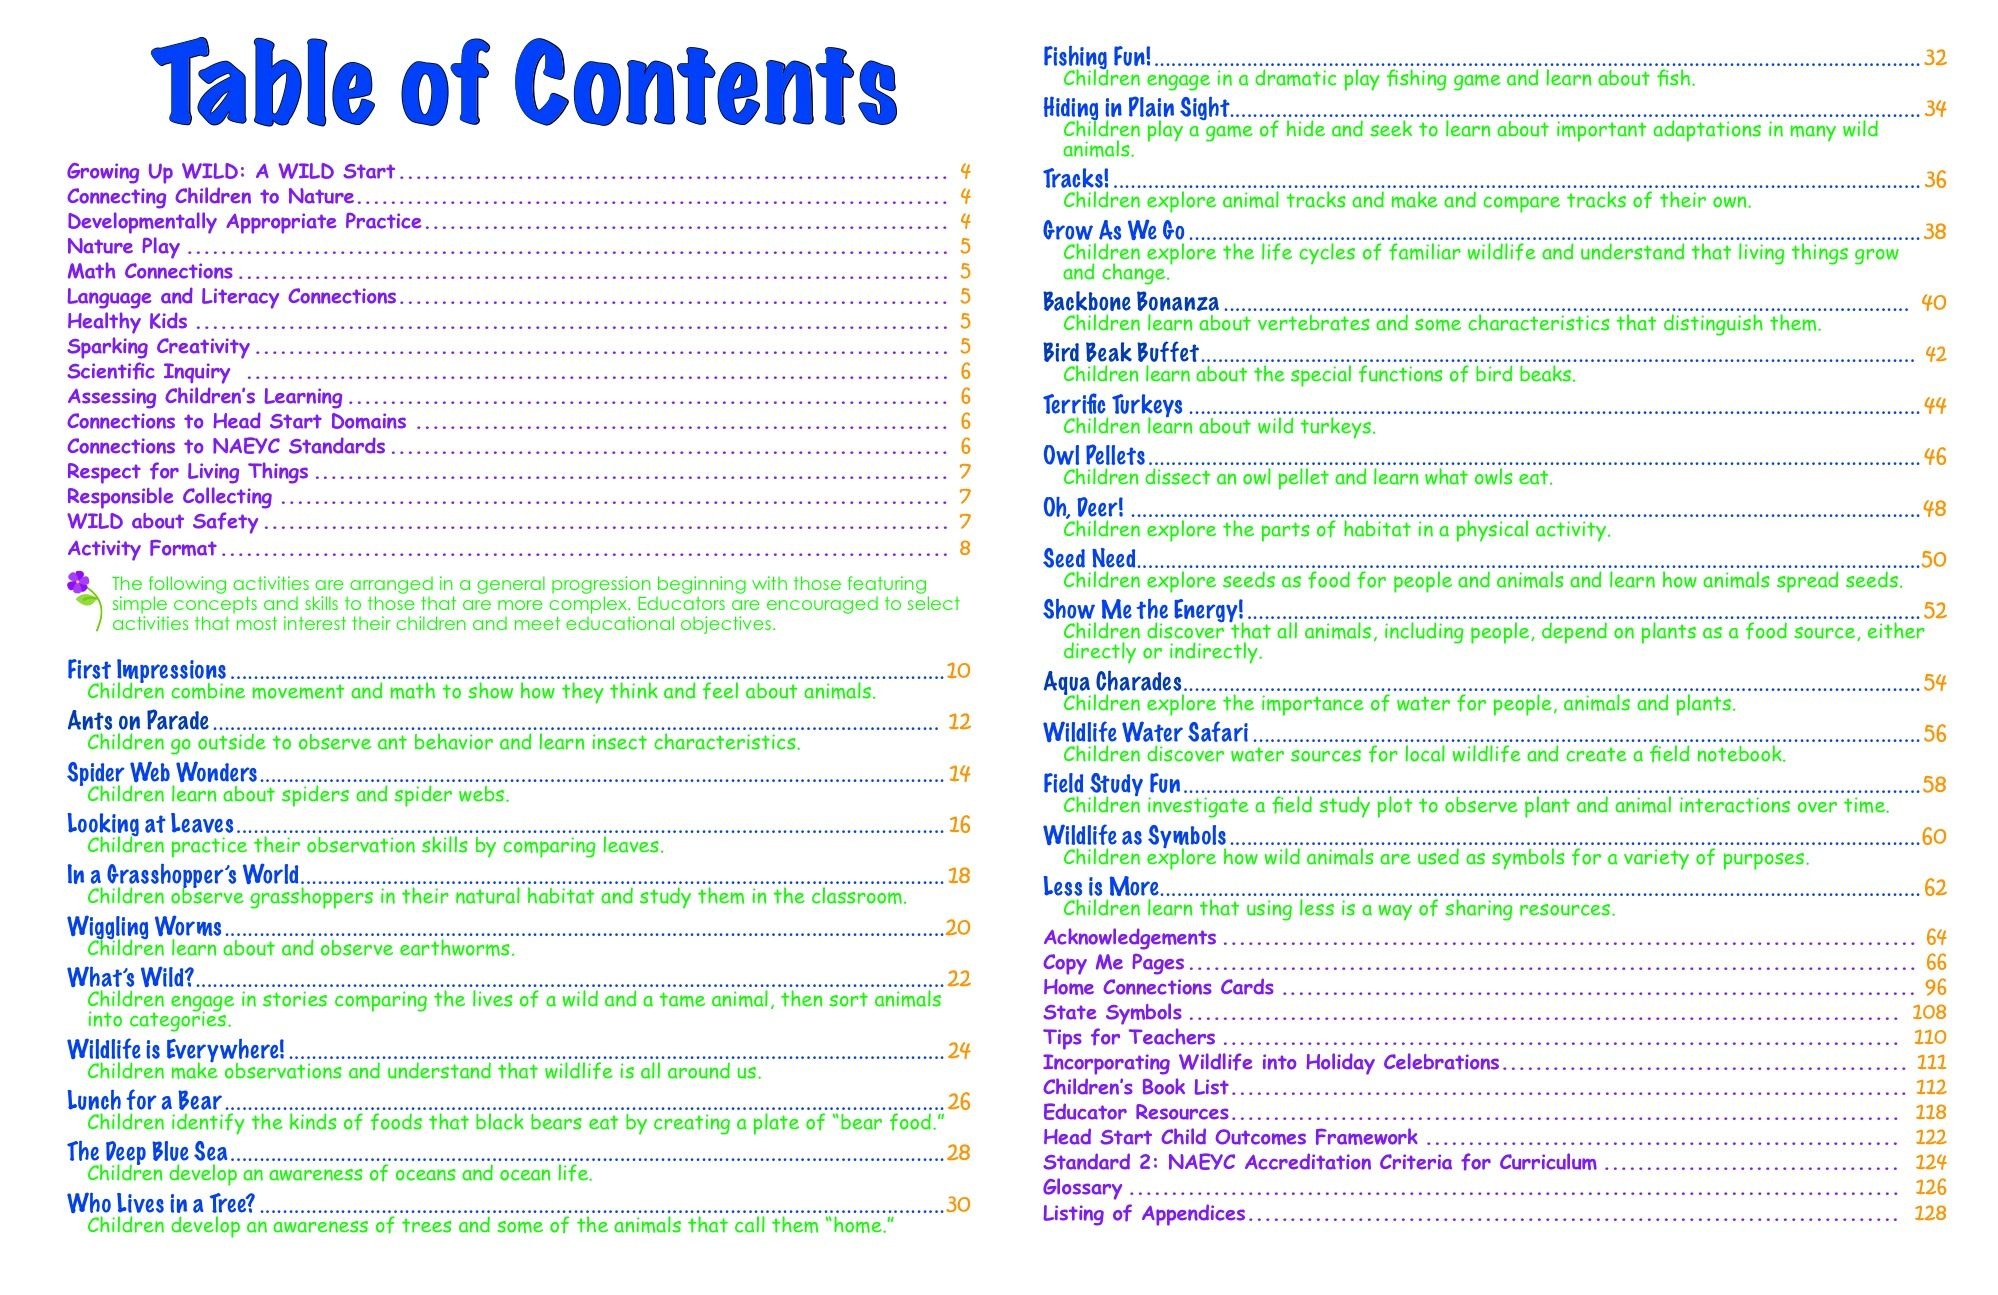 Table of contents of research paper for Table of contents